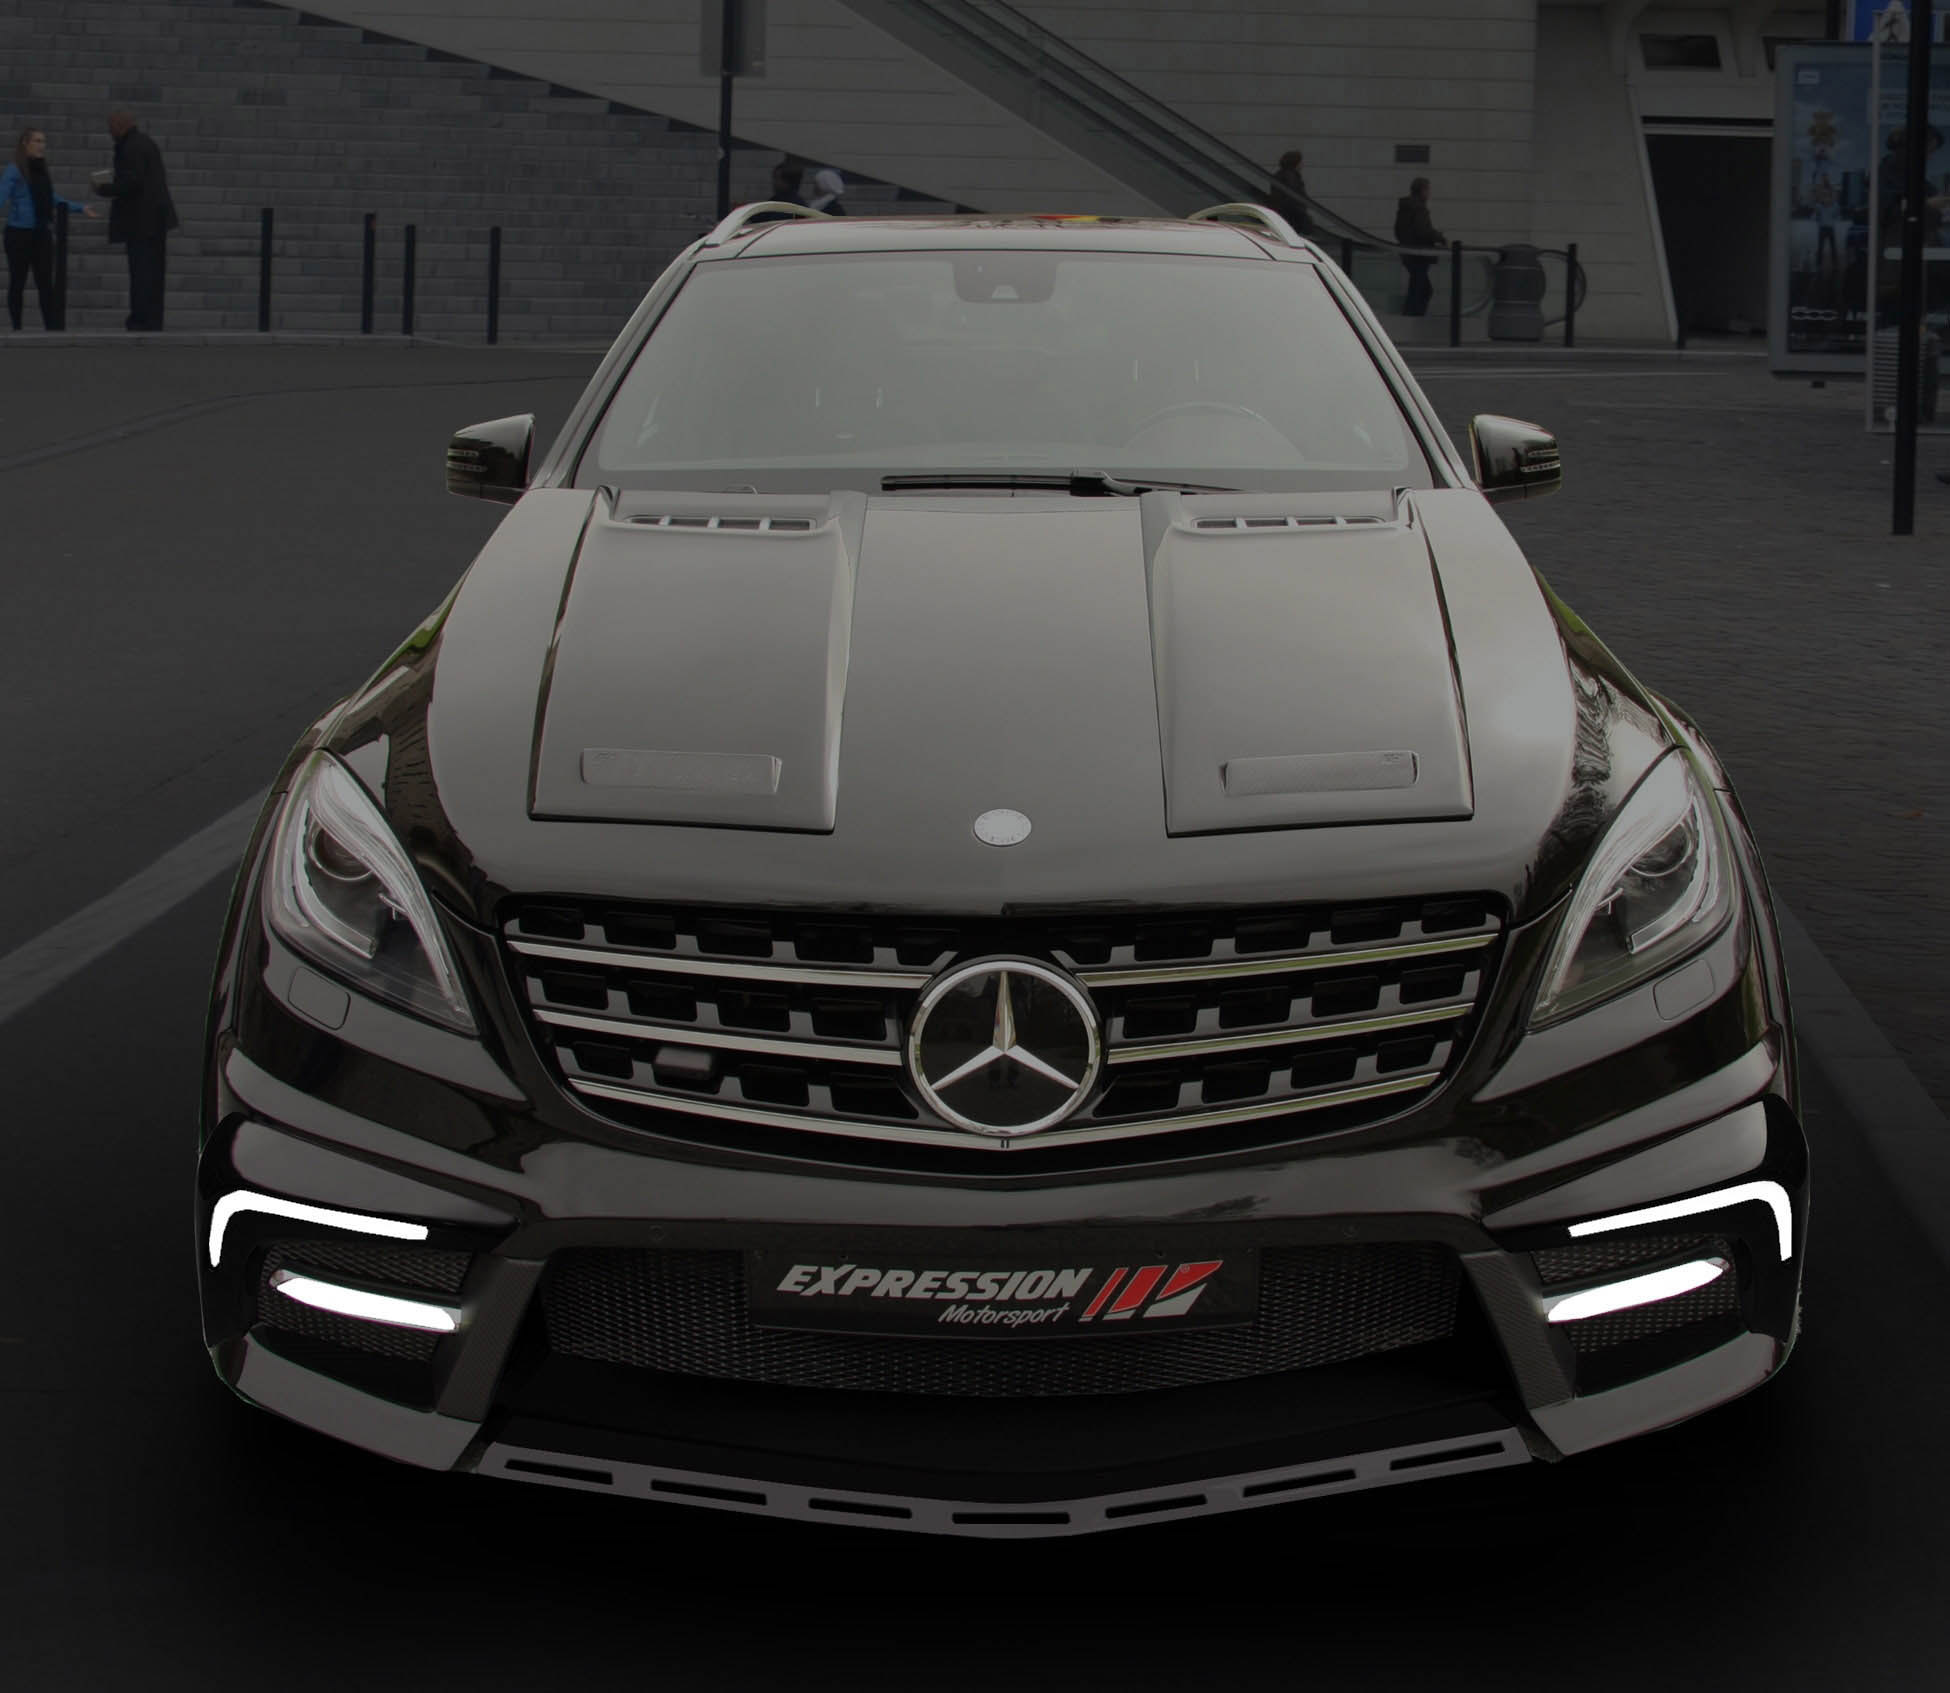 Mercedes Benz Amg Gt >> Facelift for Expression ML w166 wide body R2Z